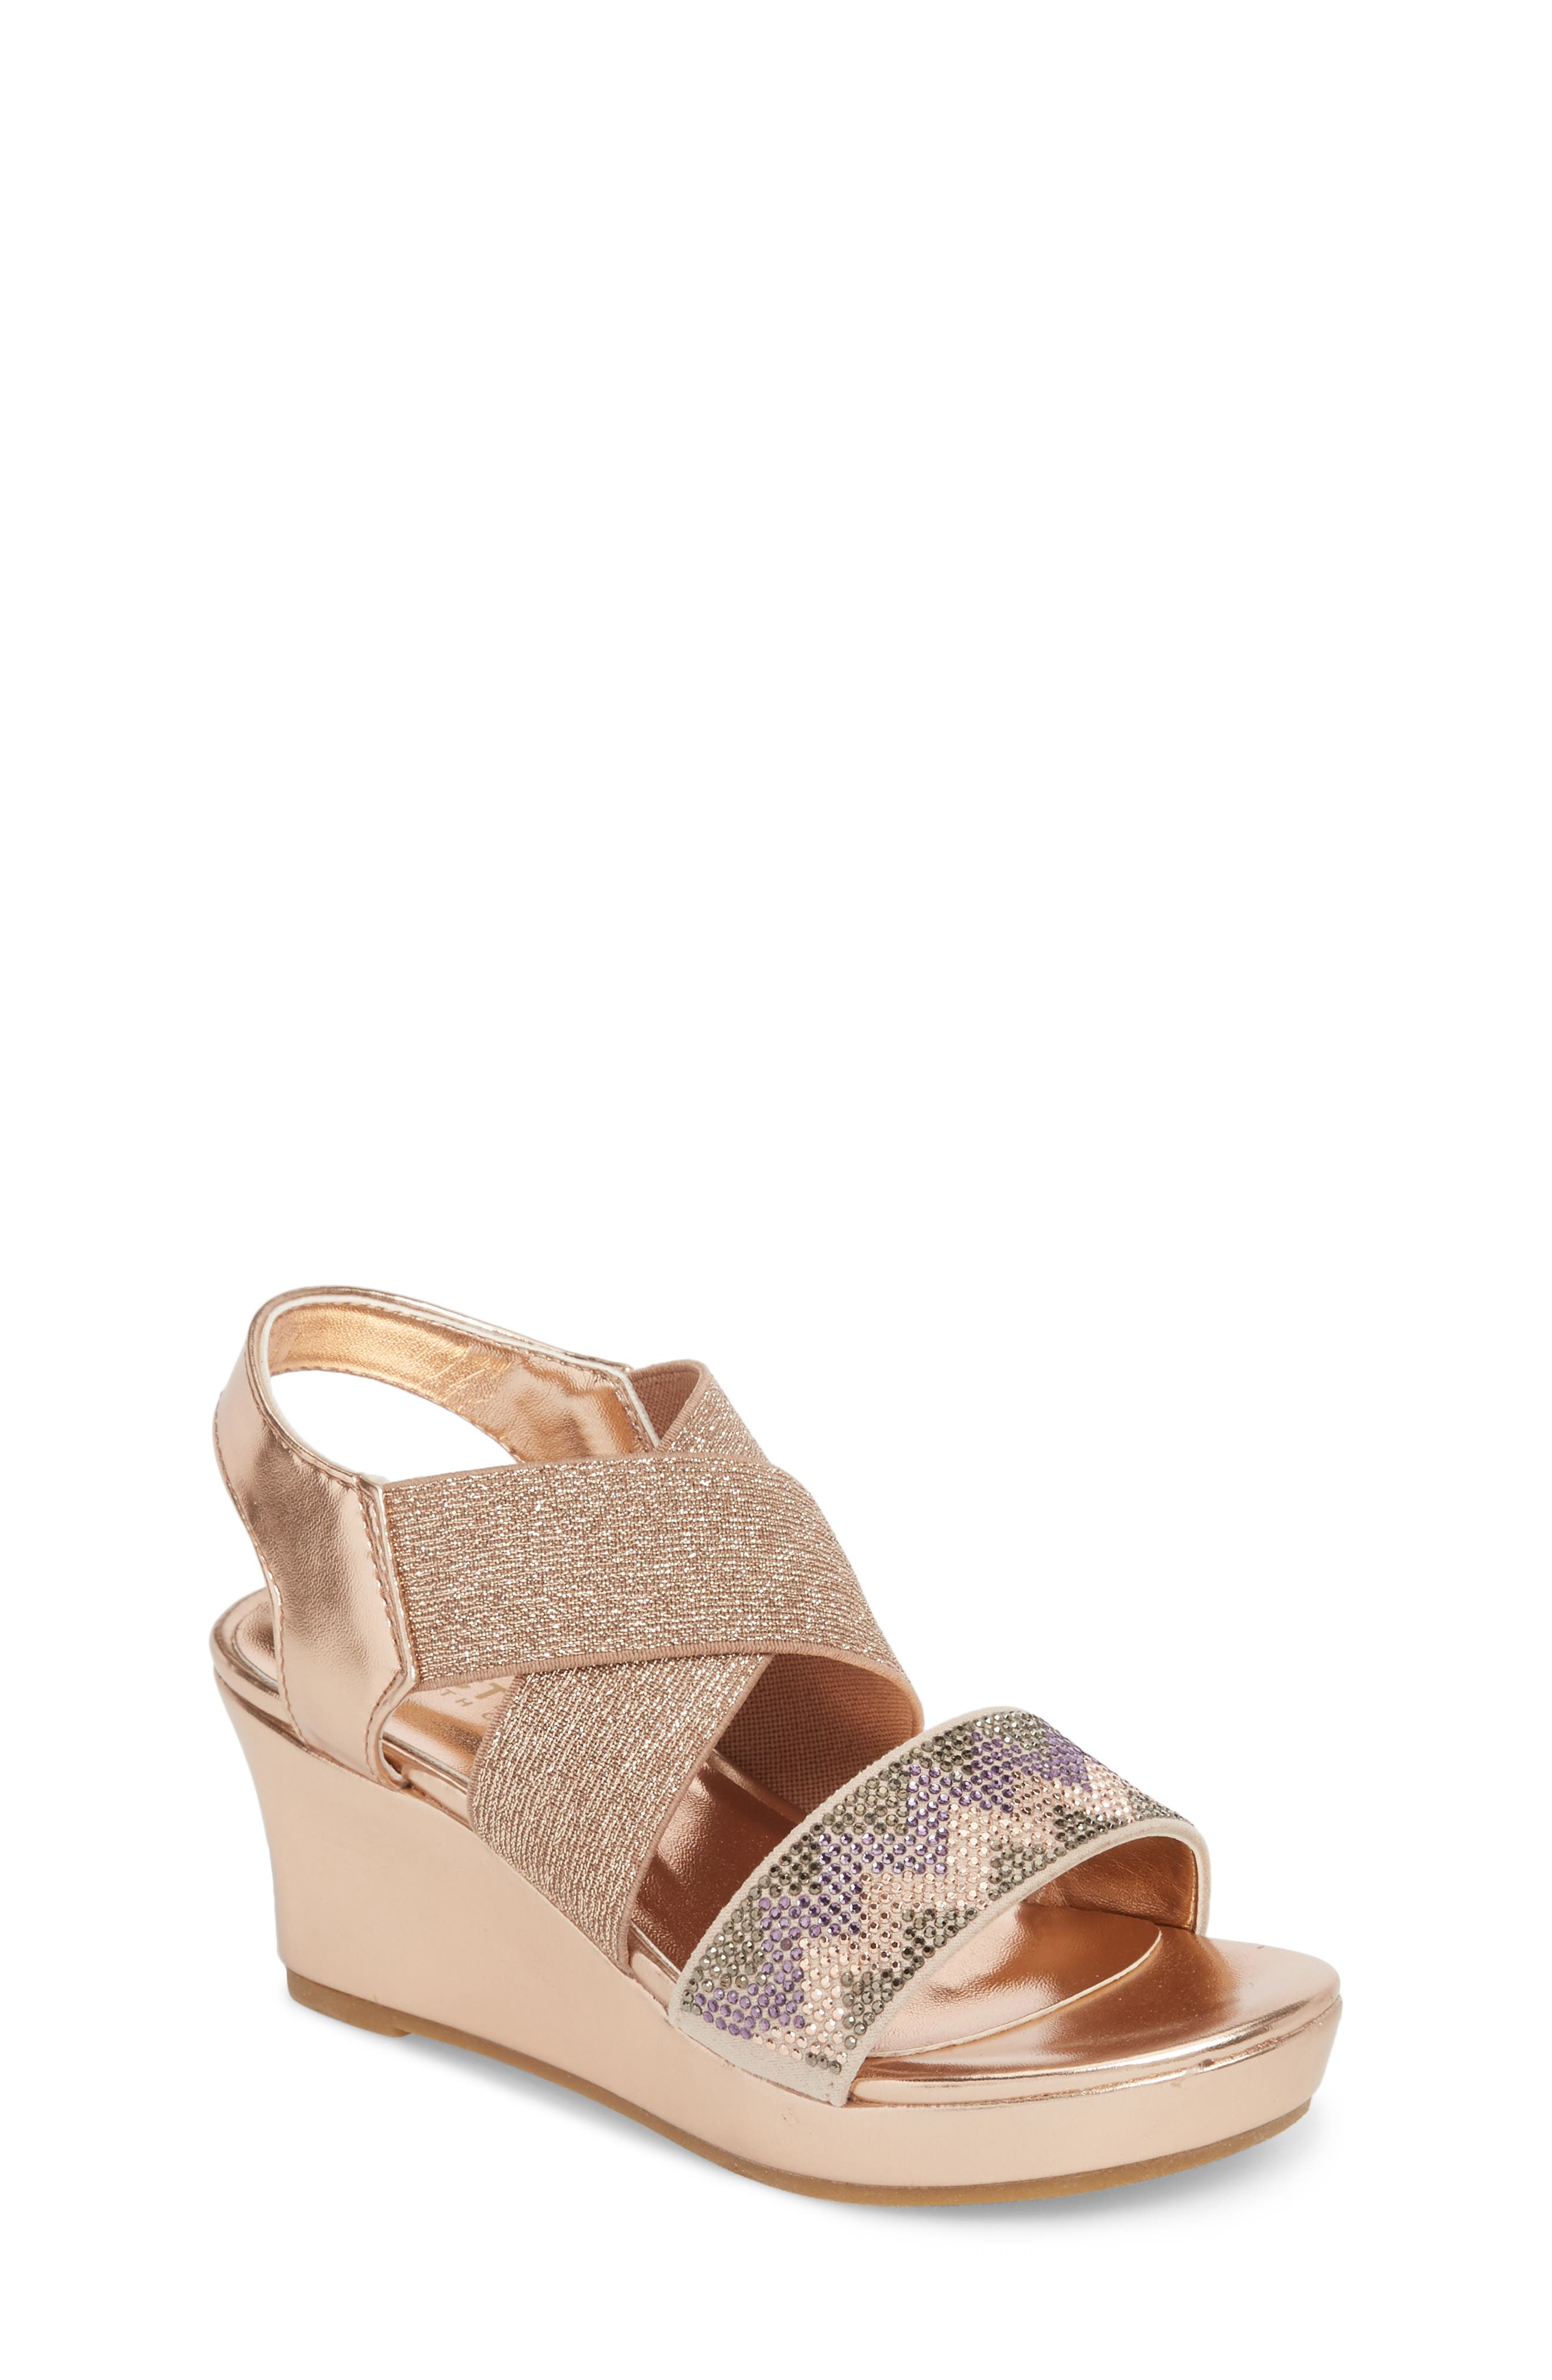 Reaction Kenneth Cole Reed Mamba Embellished Wedge Sandal,                         Main,                         color, Rose Metallic